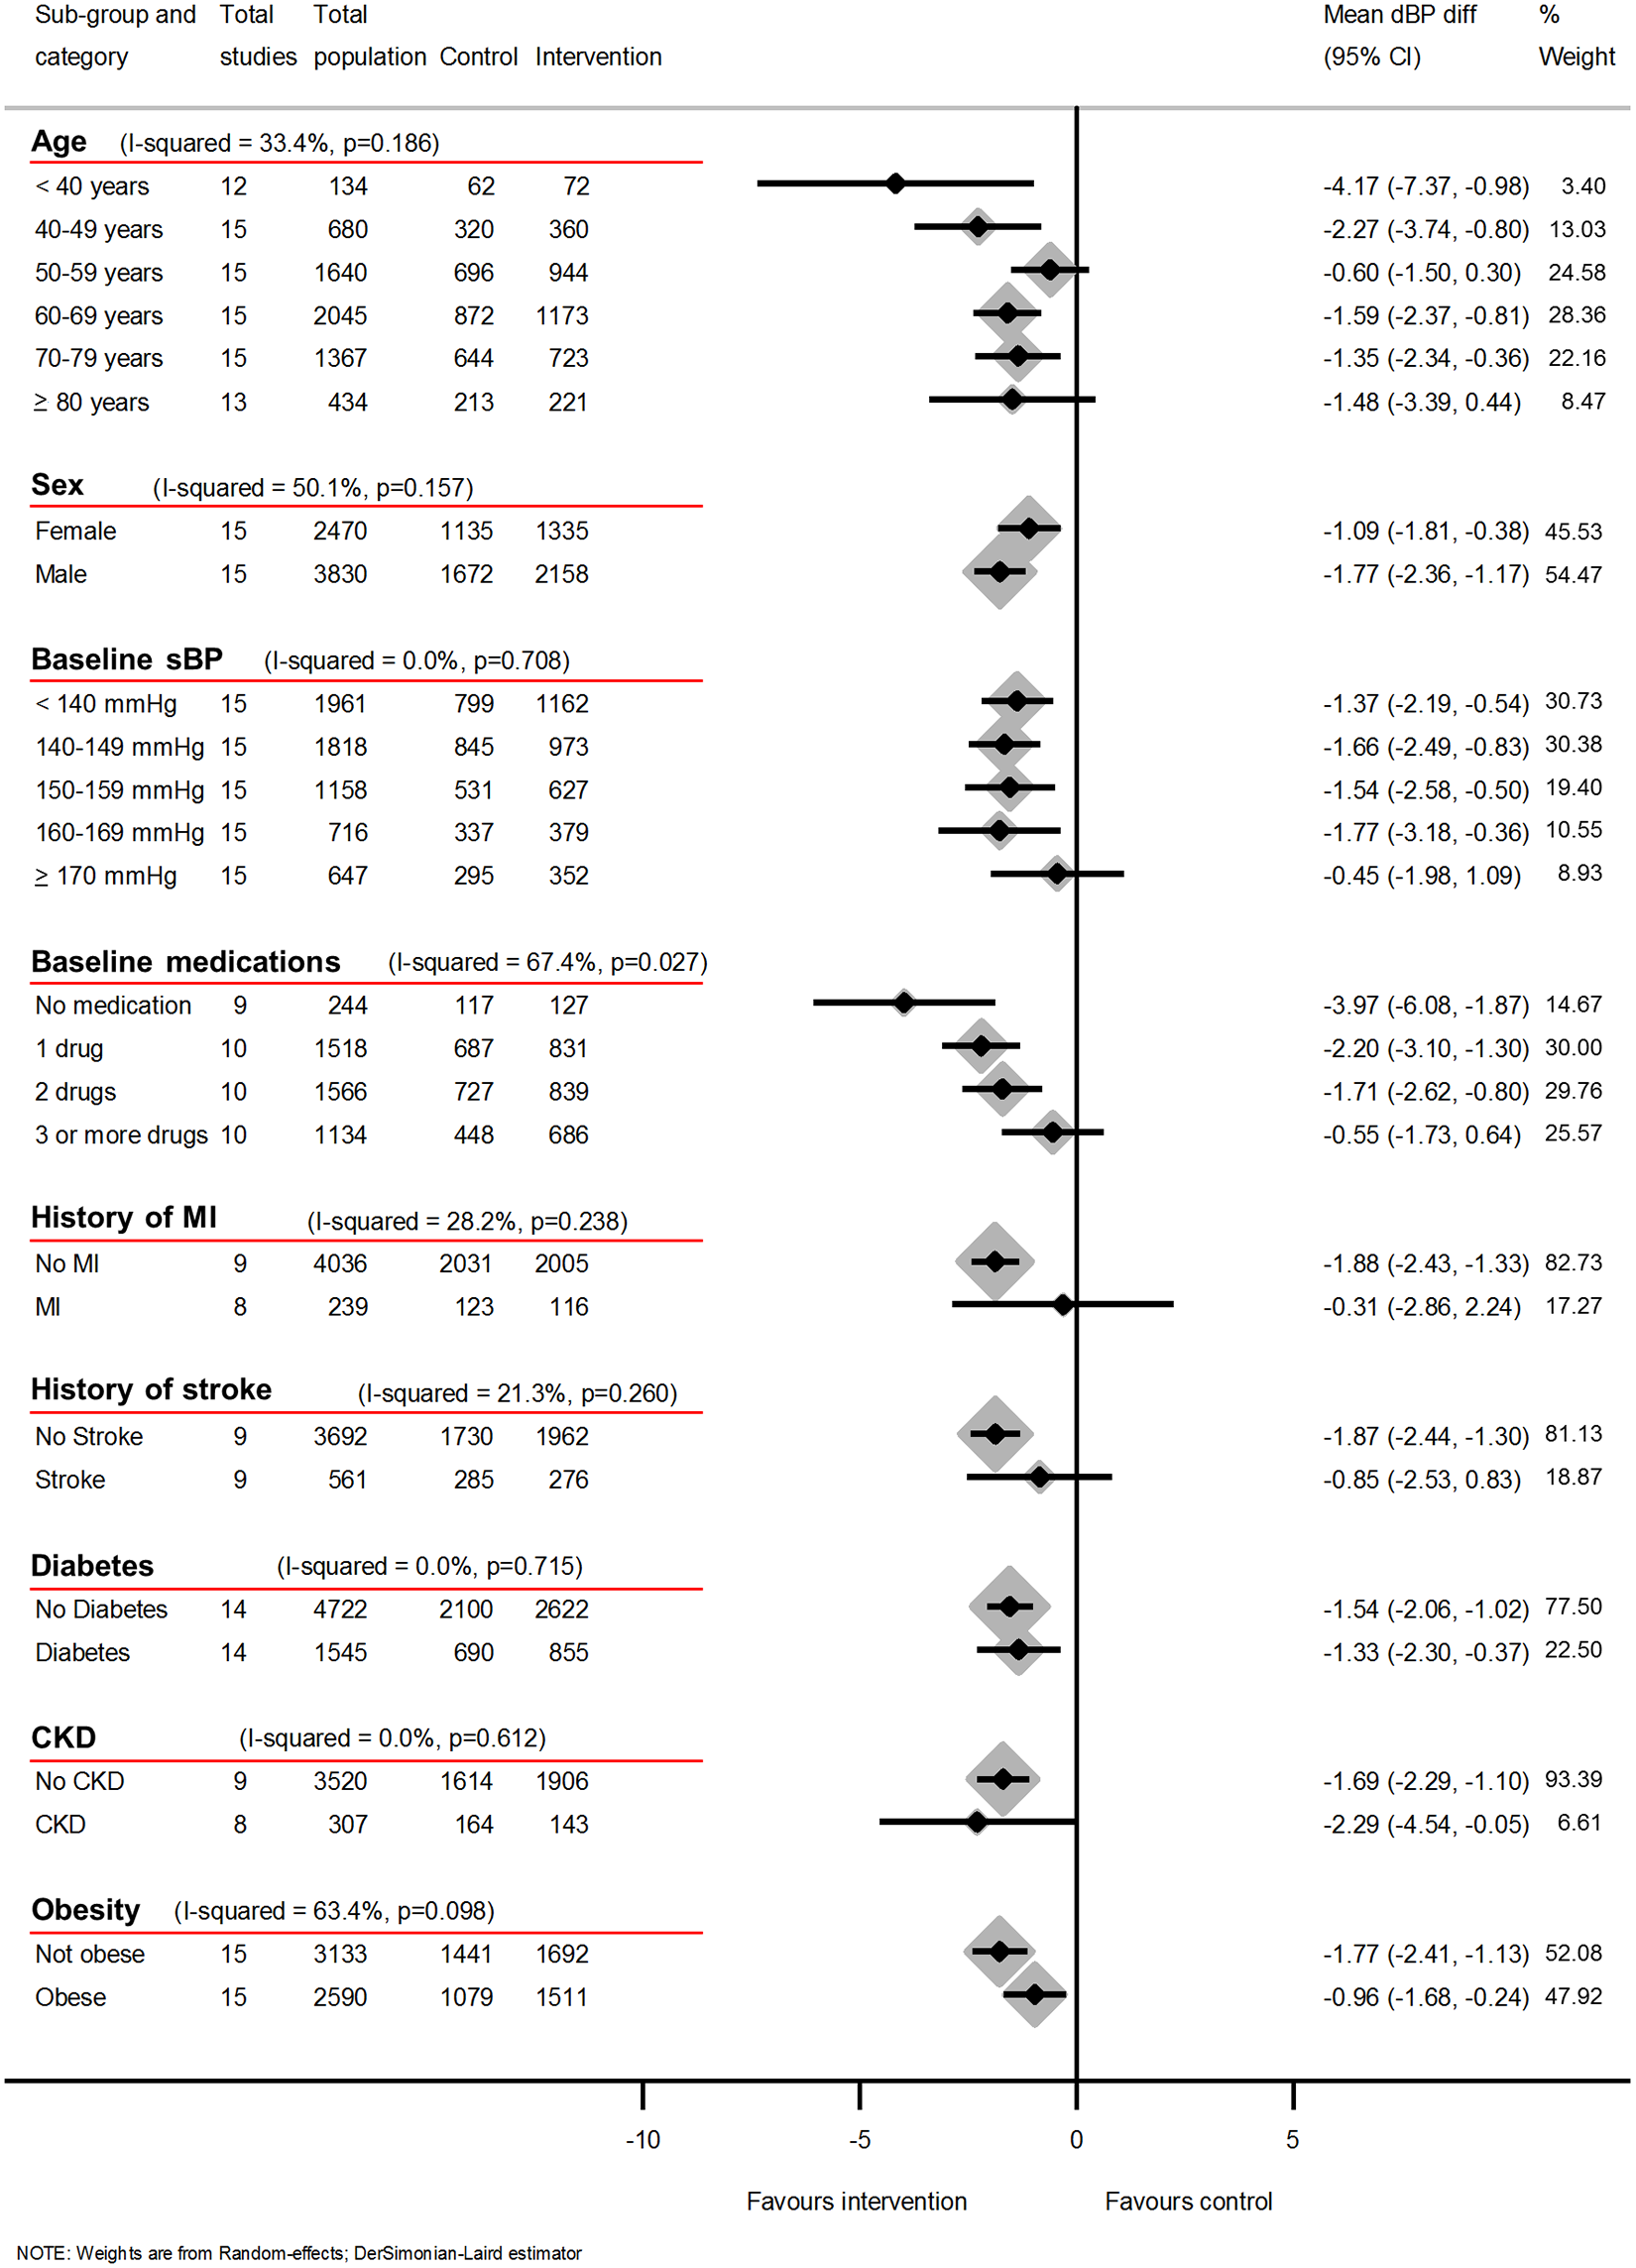 Impact of self-monitoring of BP on clinic dBP at 12 months according to prespecified subgroups (15 studies).